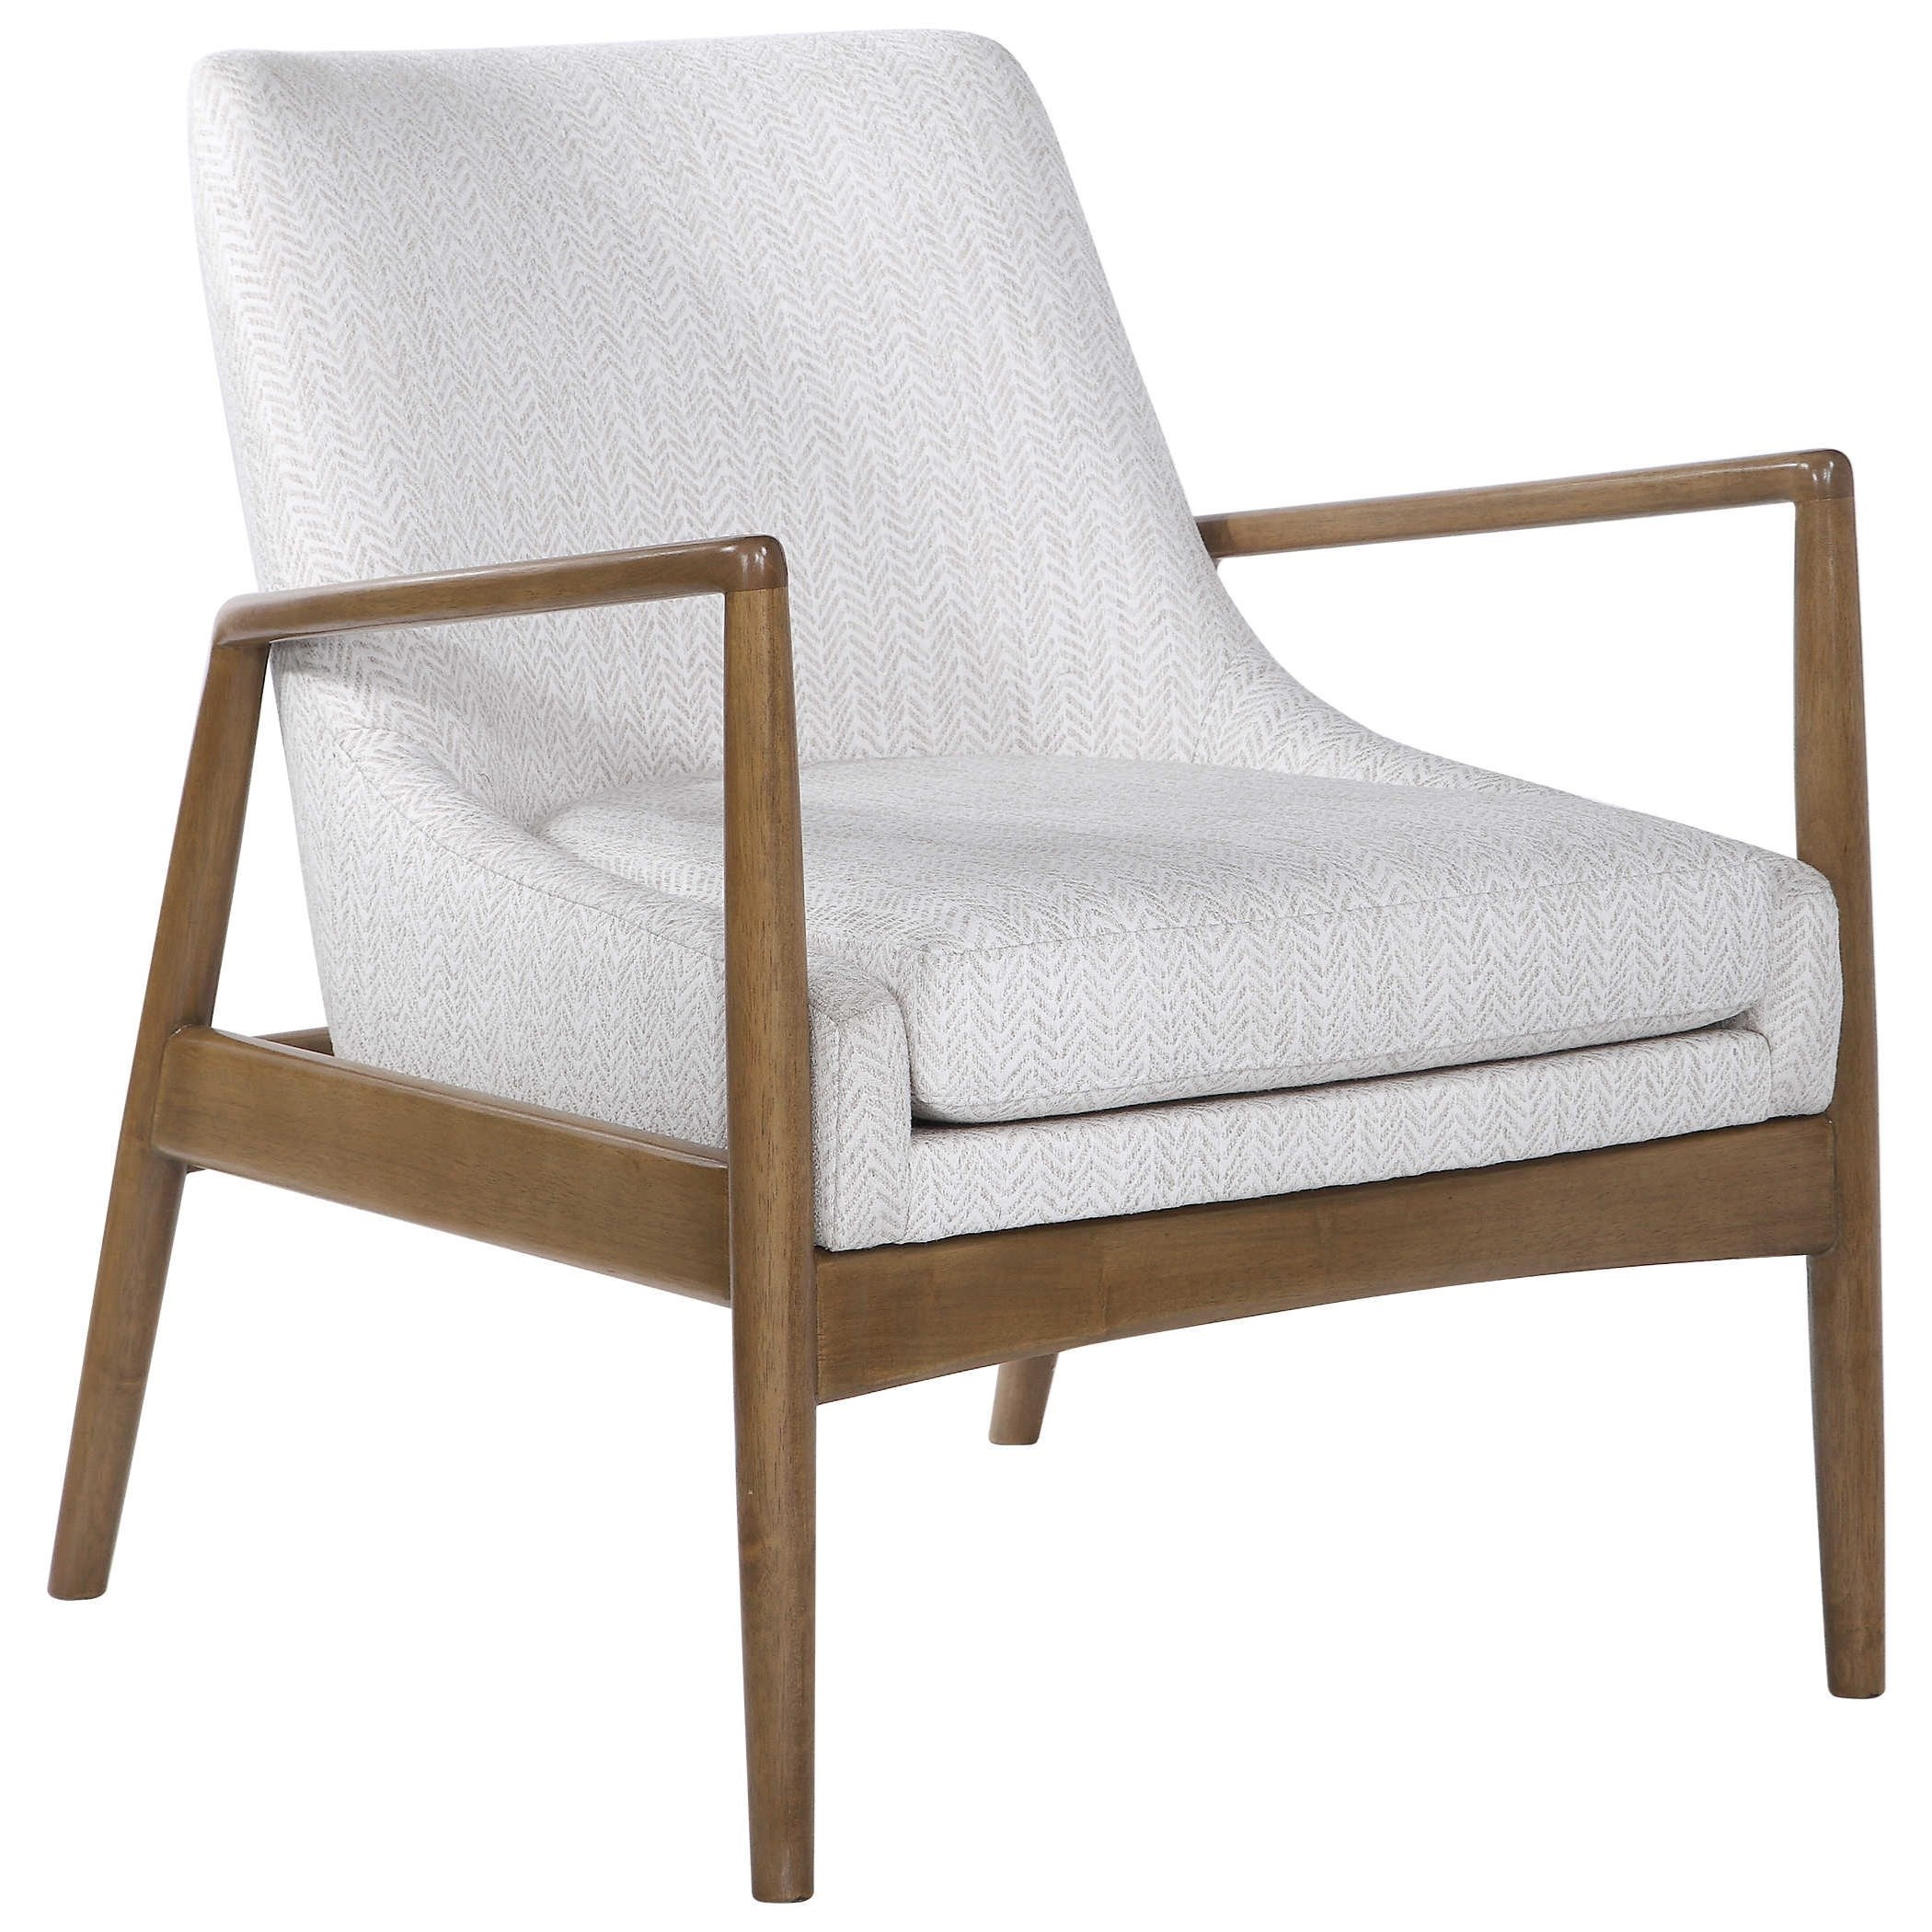 Accent Furniture - Accent Chairs Bev White Accent Chair by Uttermost at Furniture Superstore - Rochester, MN